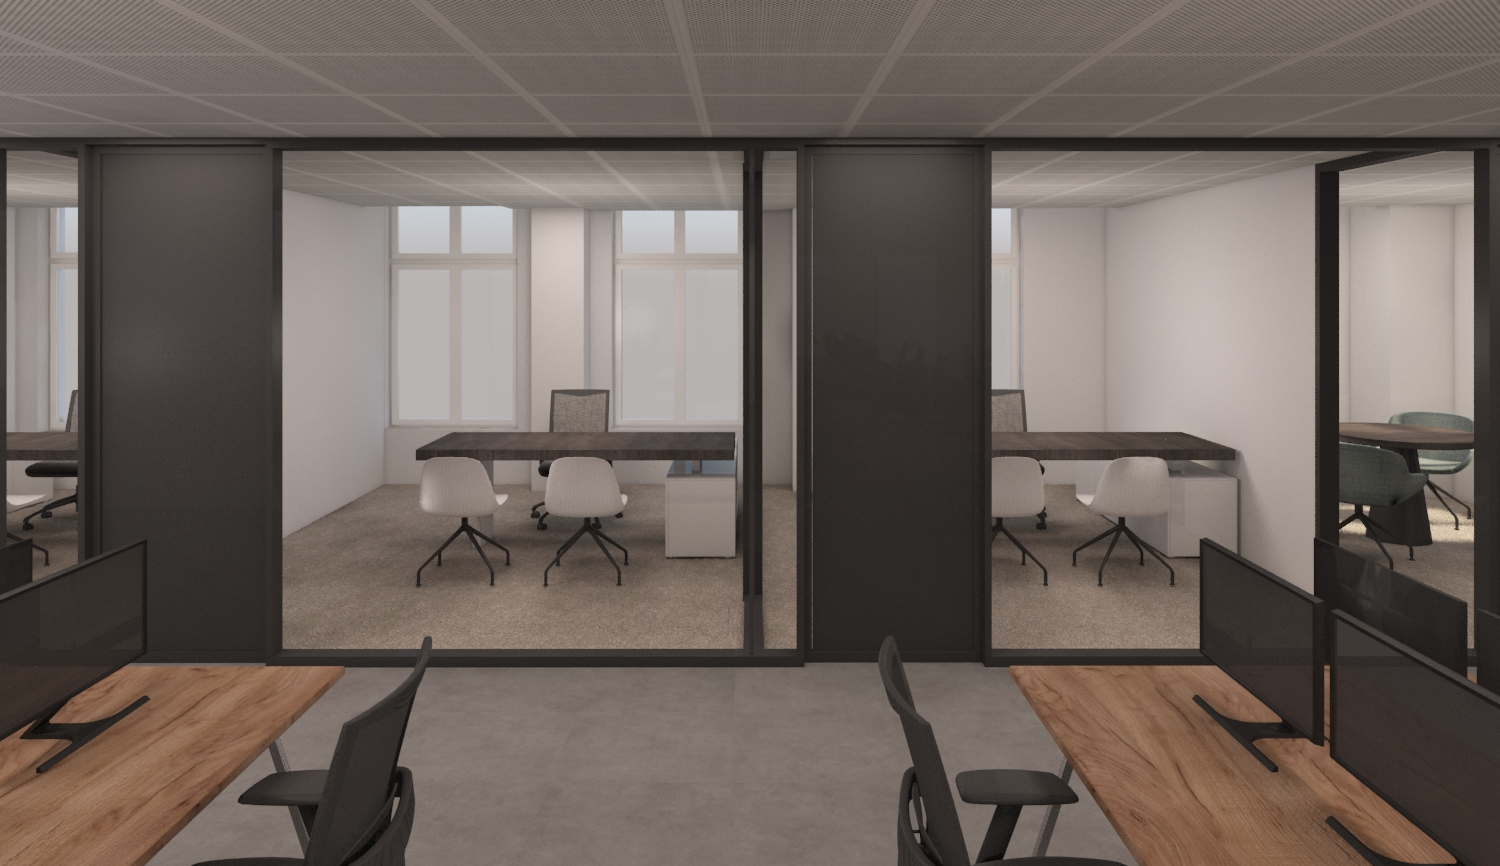 software company's office renovation in London, United Kingdom, office renovation ideas, office refu